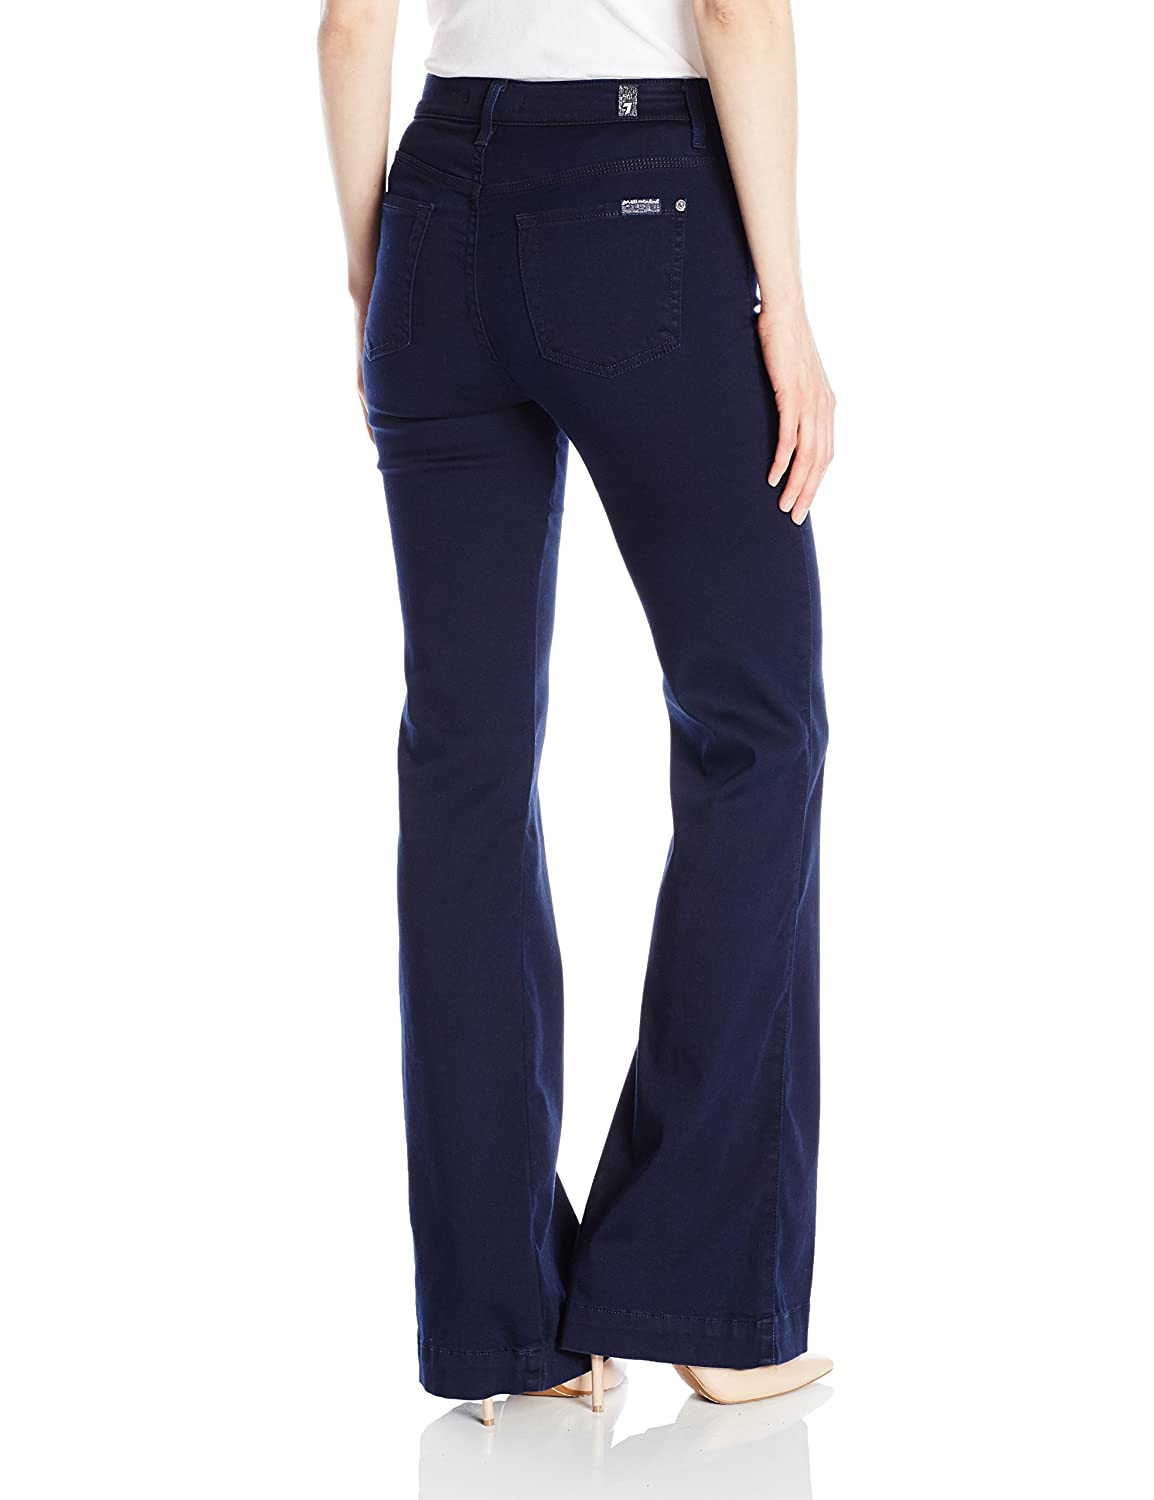 7 For All Mankind Women's Ginger Fashion Trouser Jean In Featherweight Rich Blue